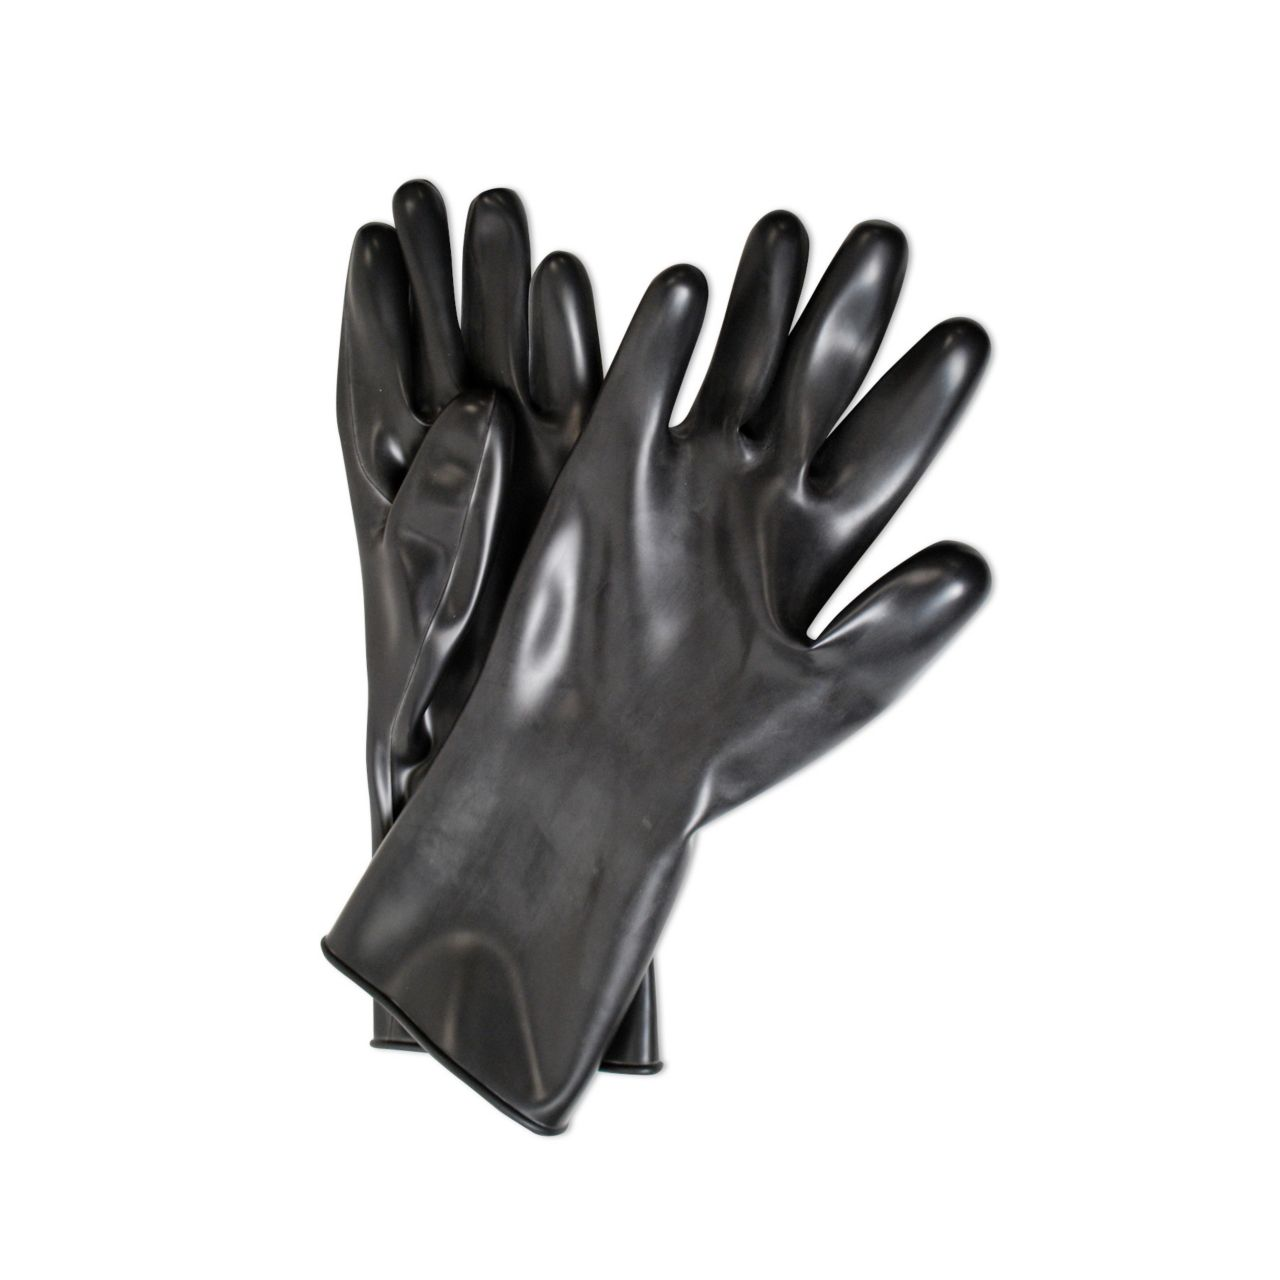 HS_vitonc2ae_unsupported_gloves_f284_viton